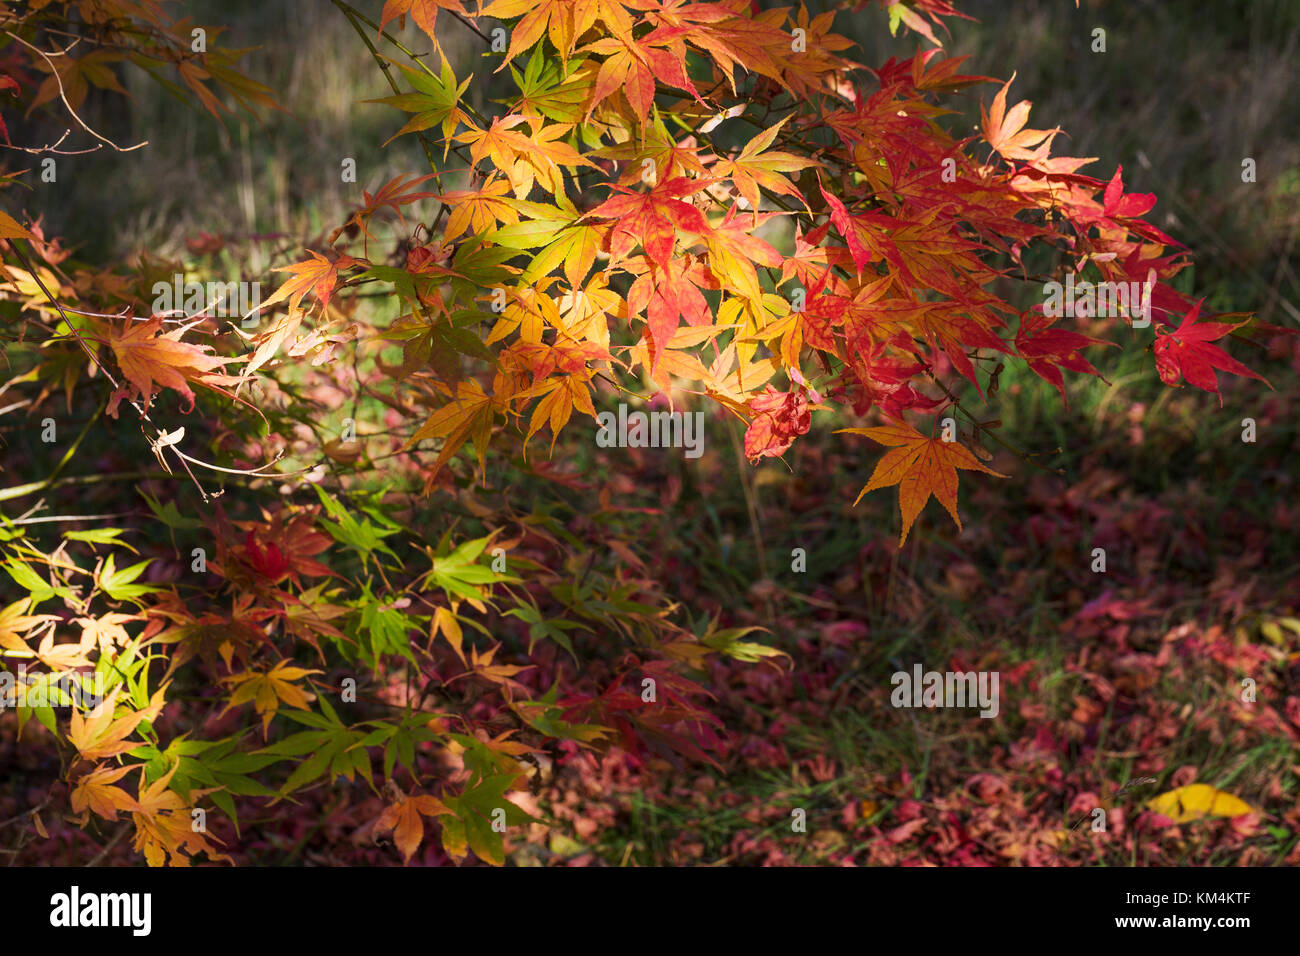 Autumn colours, foliage of an acer tree, Japanese maple with delicate palmate shapes, vivid colours, purple red - Stock Image